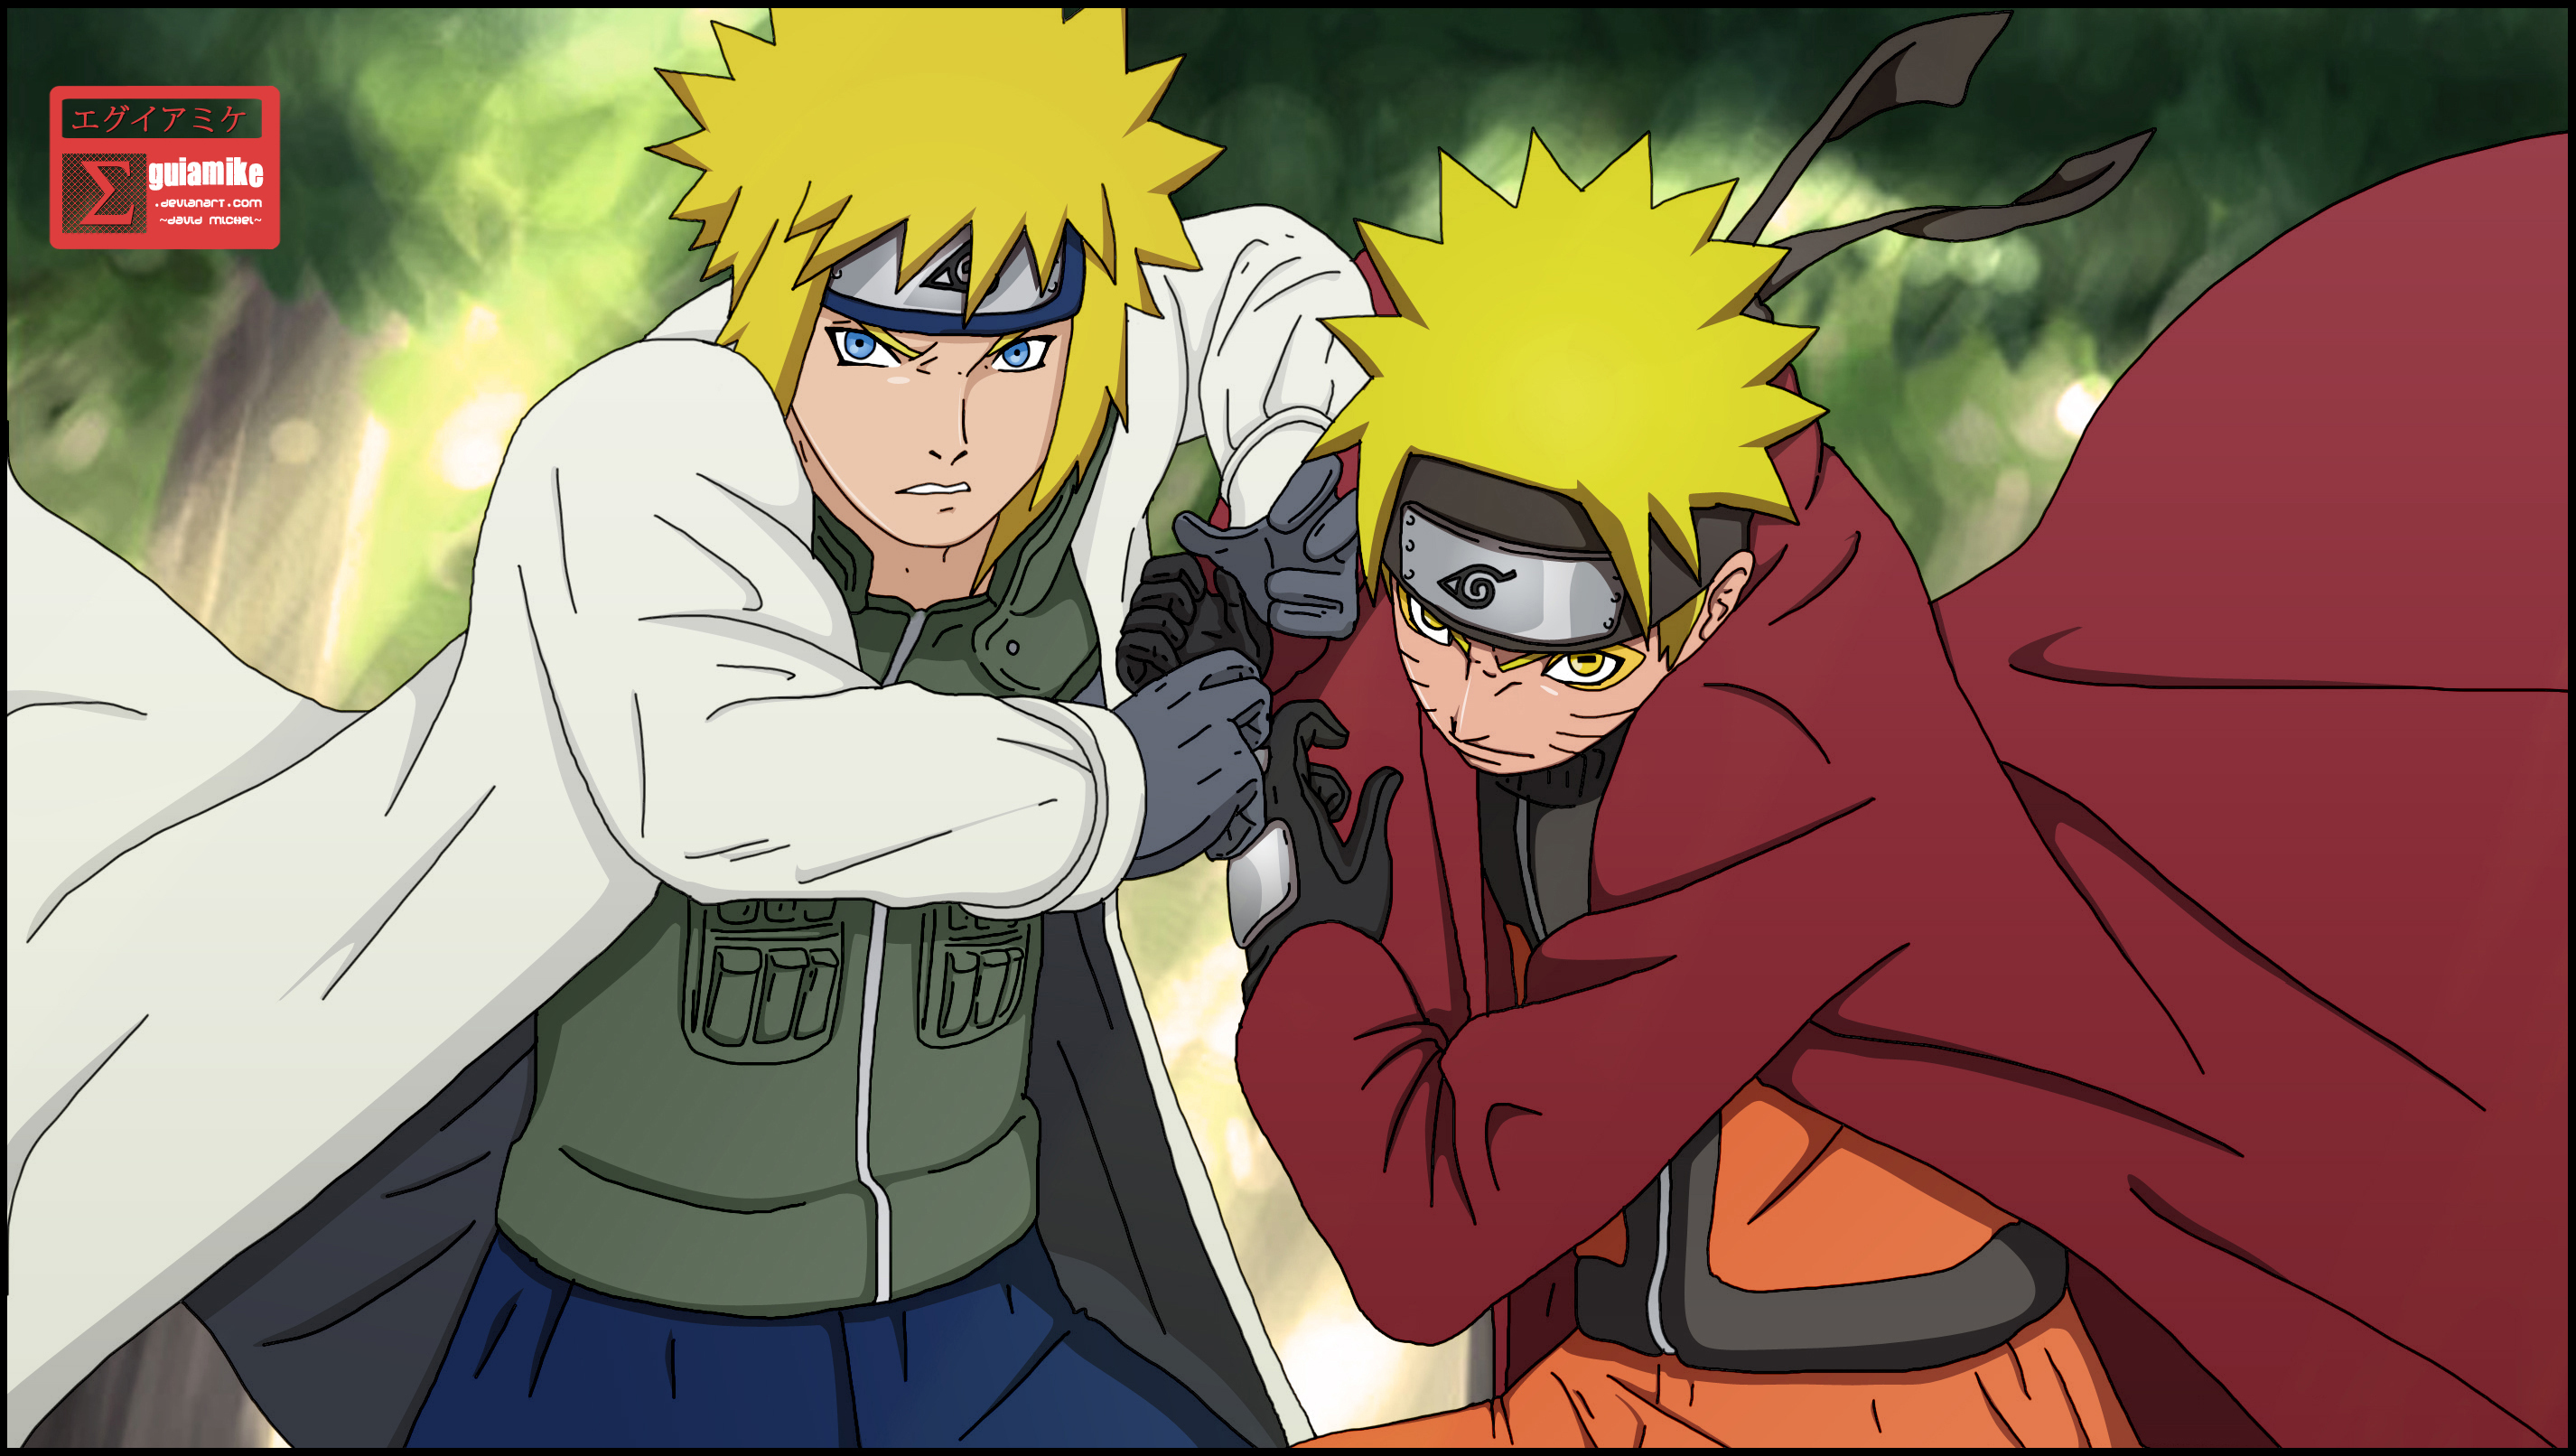 Is the 4th hokage naruto 39 s father poll results naruto - Dessin naruto akkipuden ...